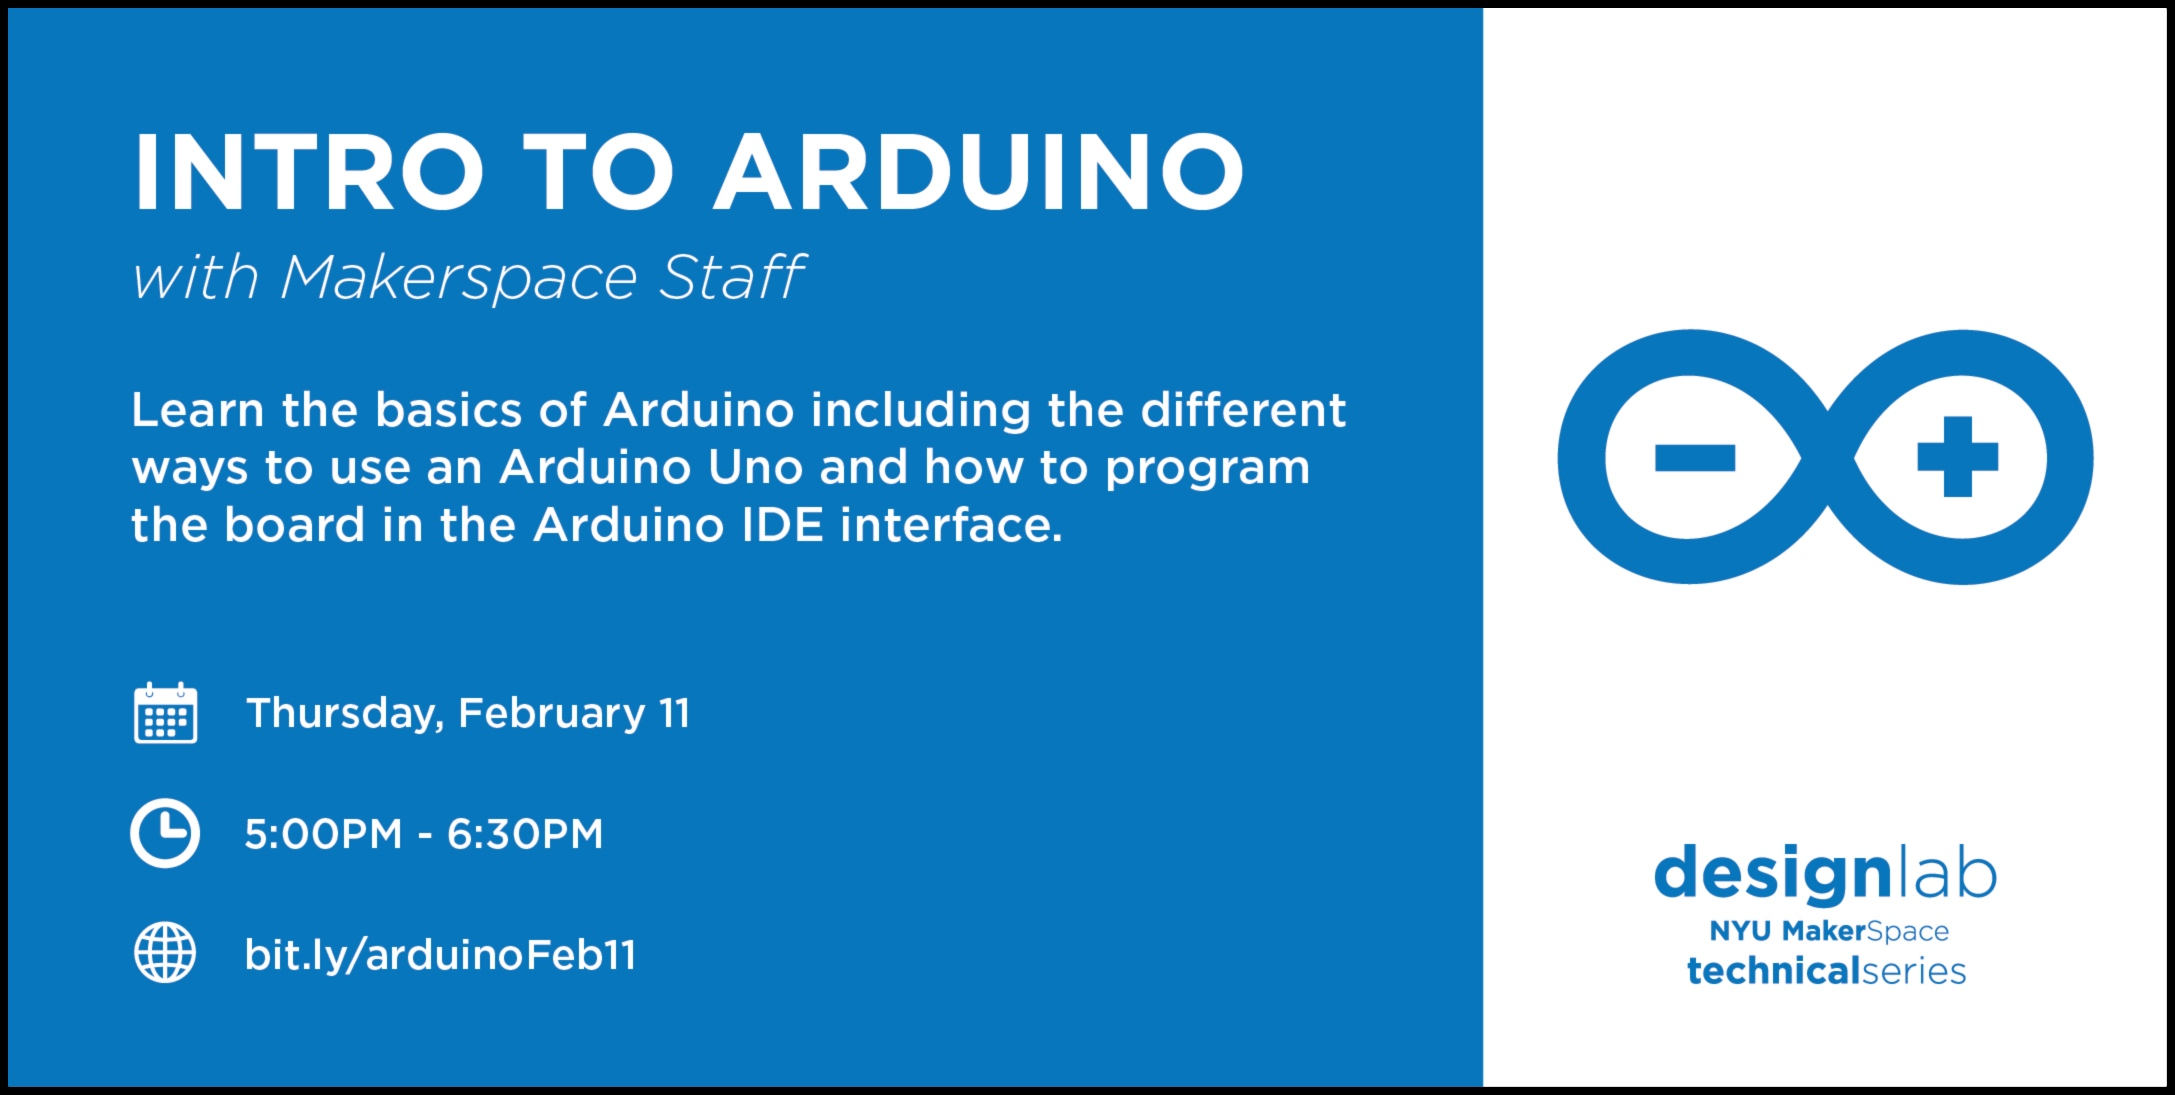 intro to arduino - flyer